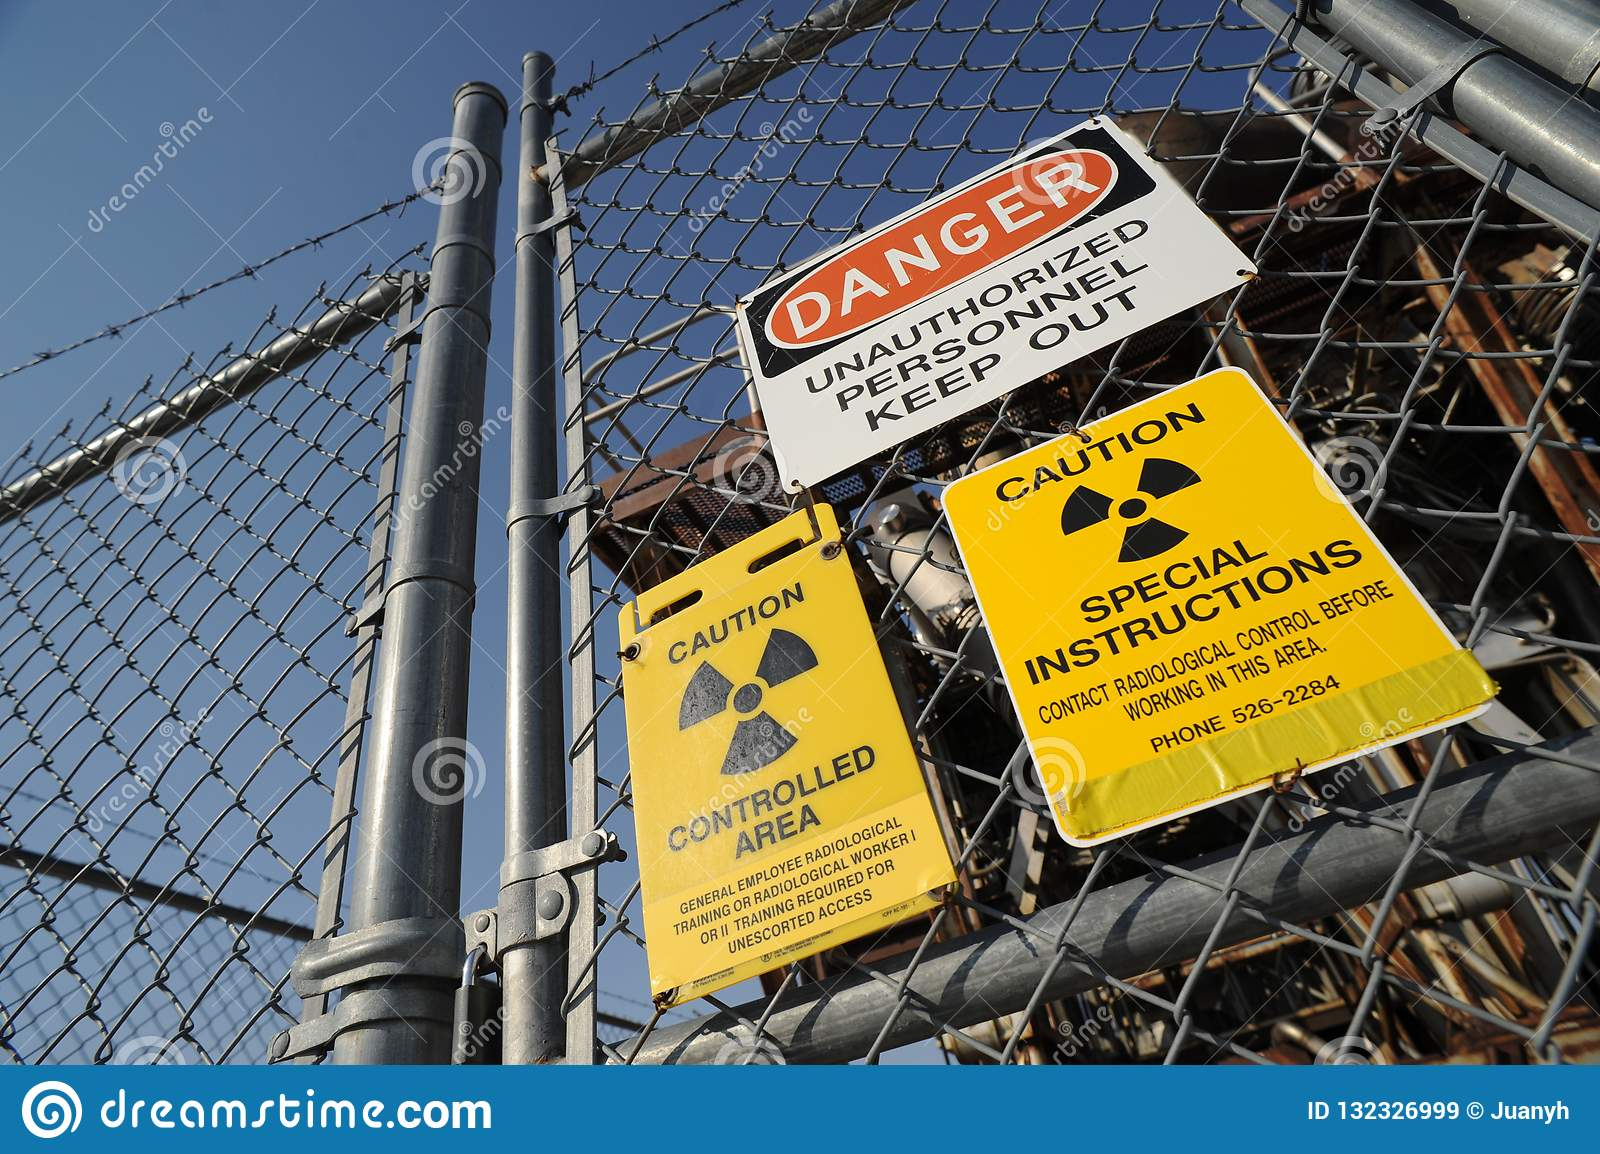 Warning Signs of a Nuclear Facility